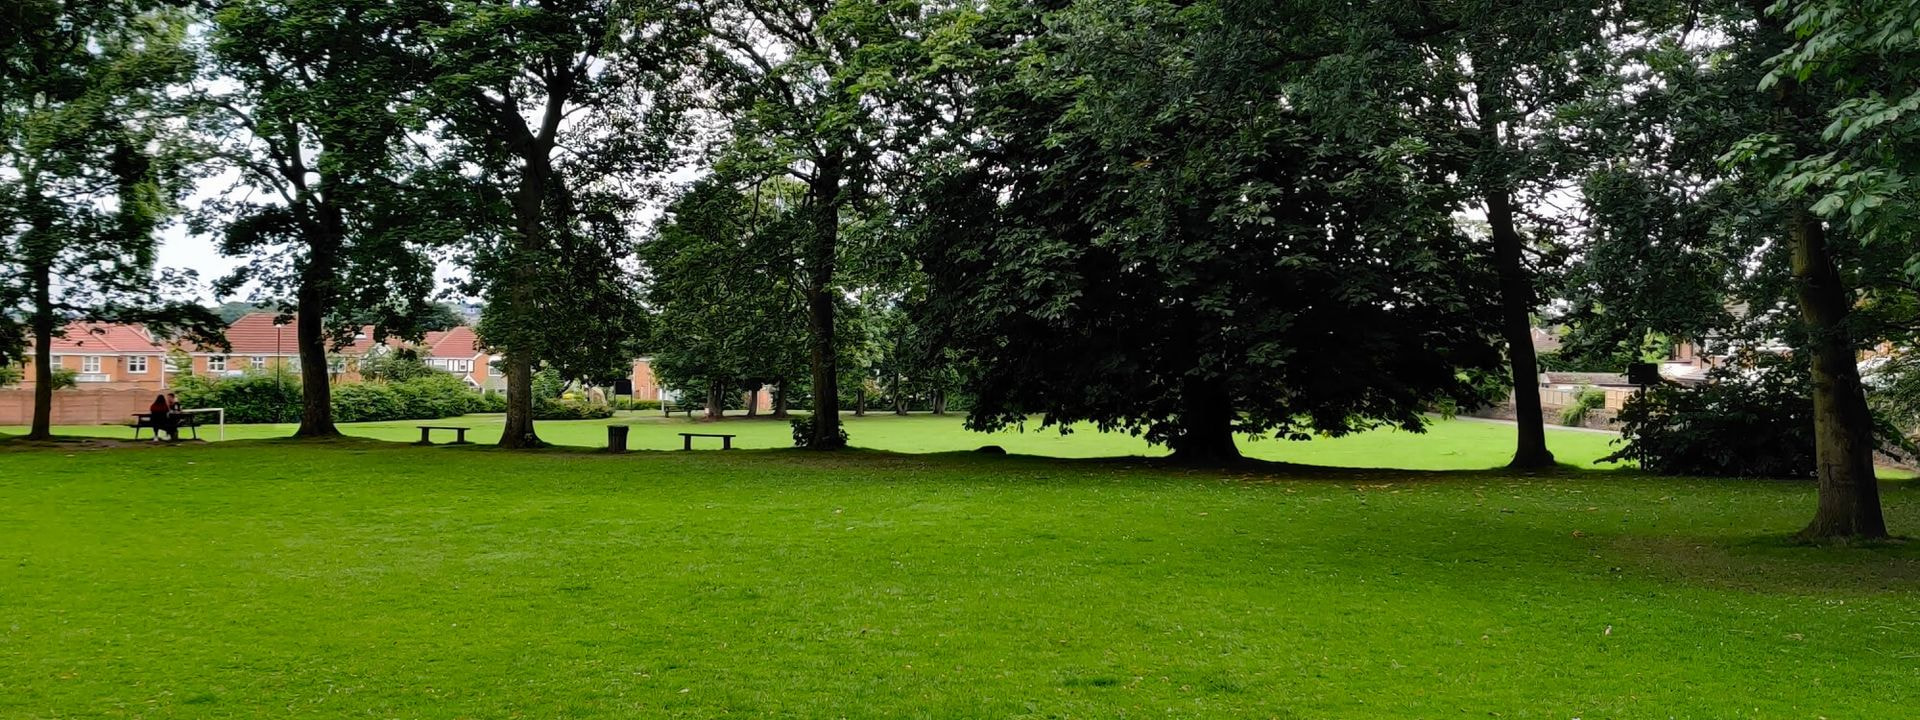 Westroyd Park field and trees